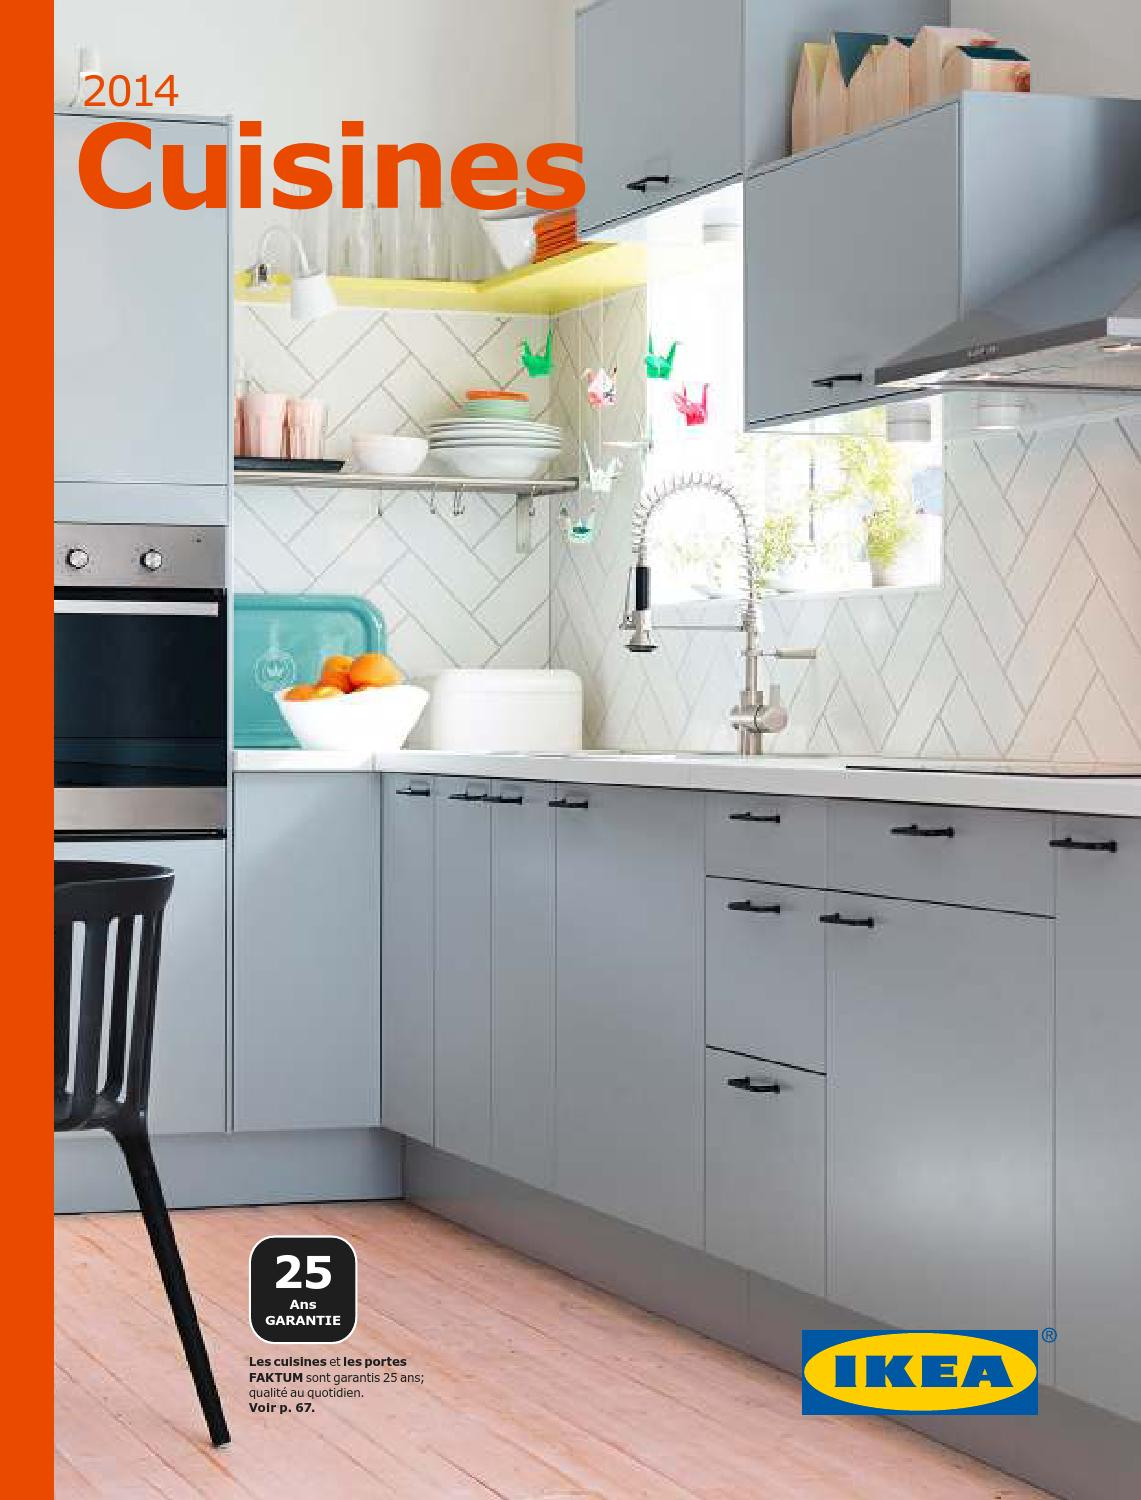 catalogue ikea cuisine 2014 fr complete by adclick bvba issuu. Black Bedroom Furniture Sets. Home Design Ideas